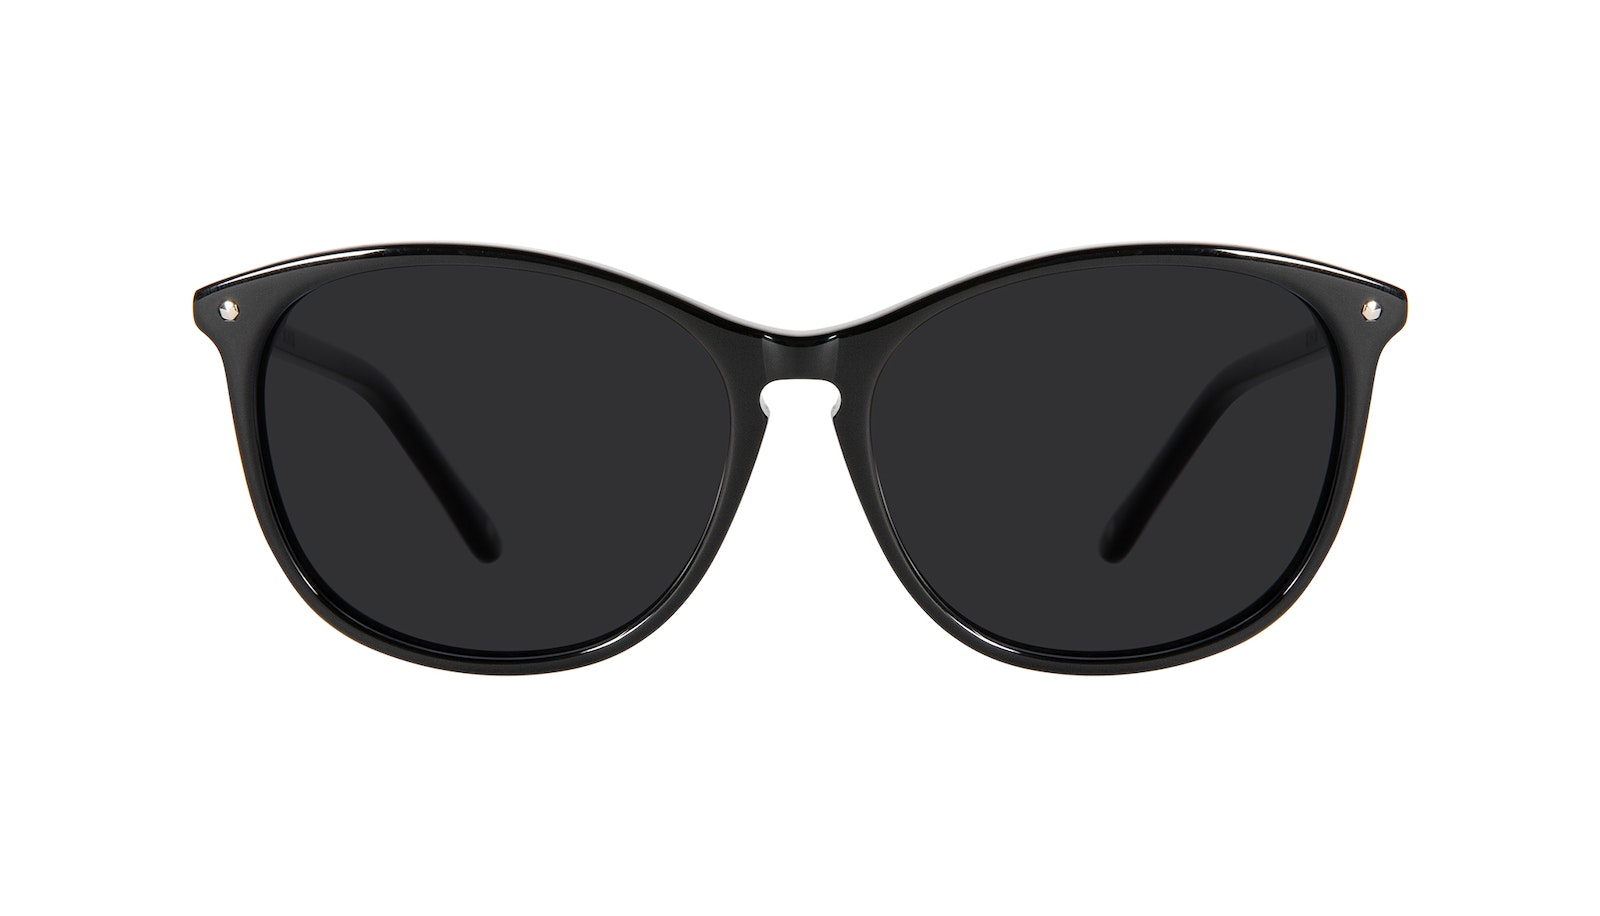 Affordable Fashion Glasses Round Sunglasses Women Nadine Petite Pitch Black